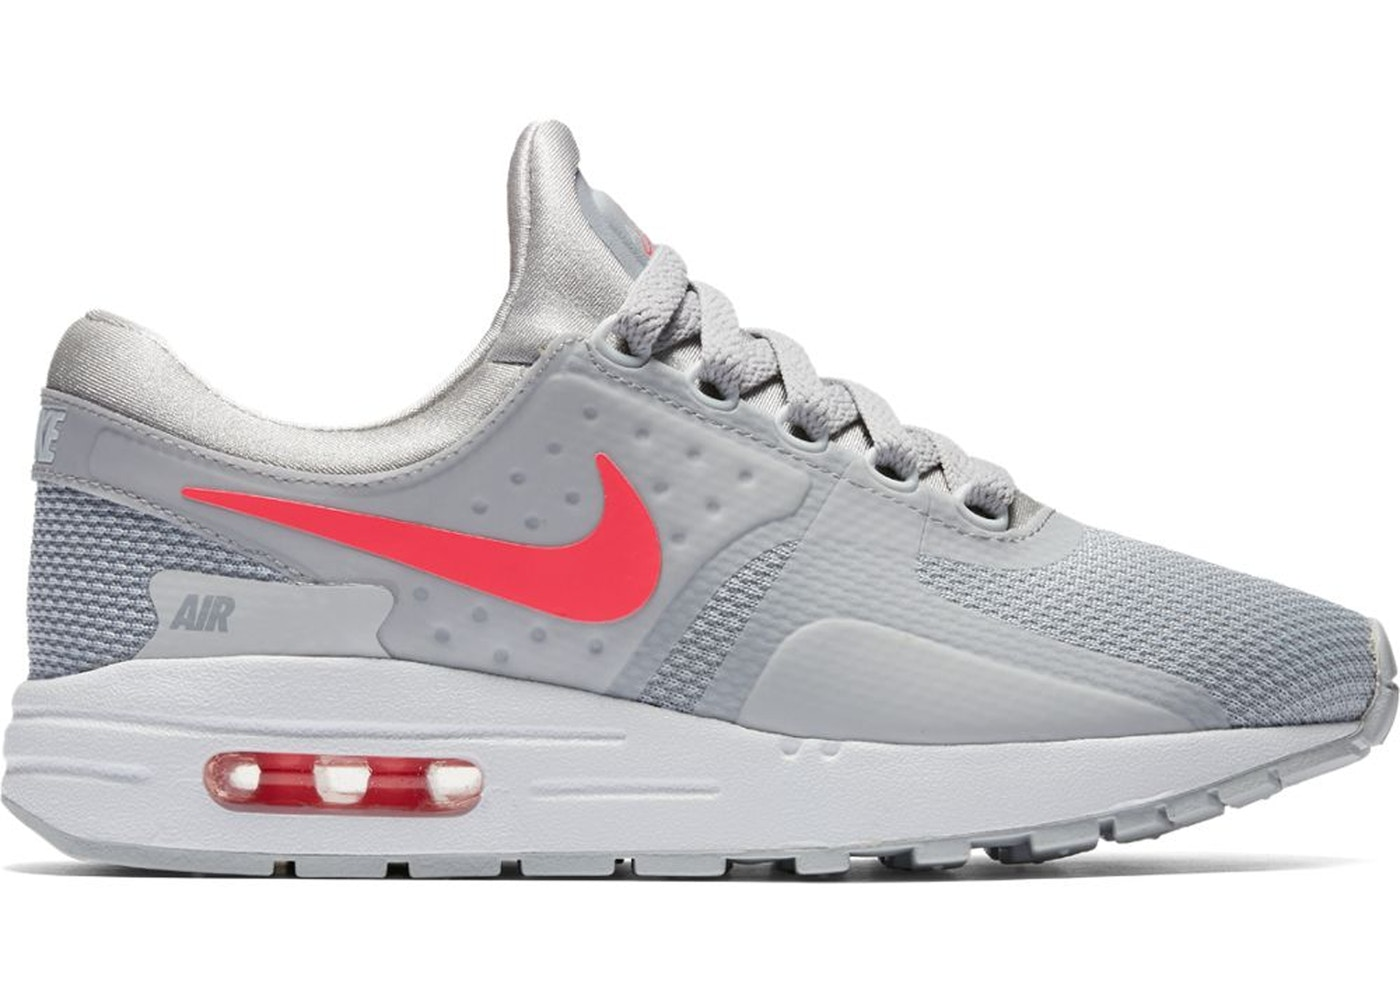 premium selection cee29 5e0d2 Air Max Zero Wolf Grey Racer Pink (GS) - 881229-003